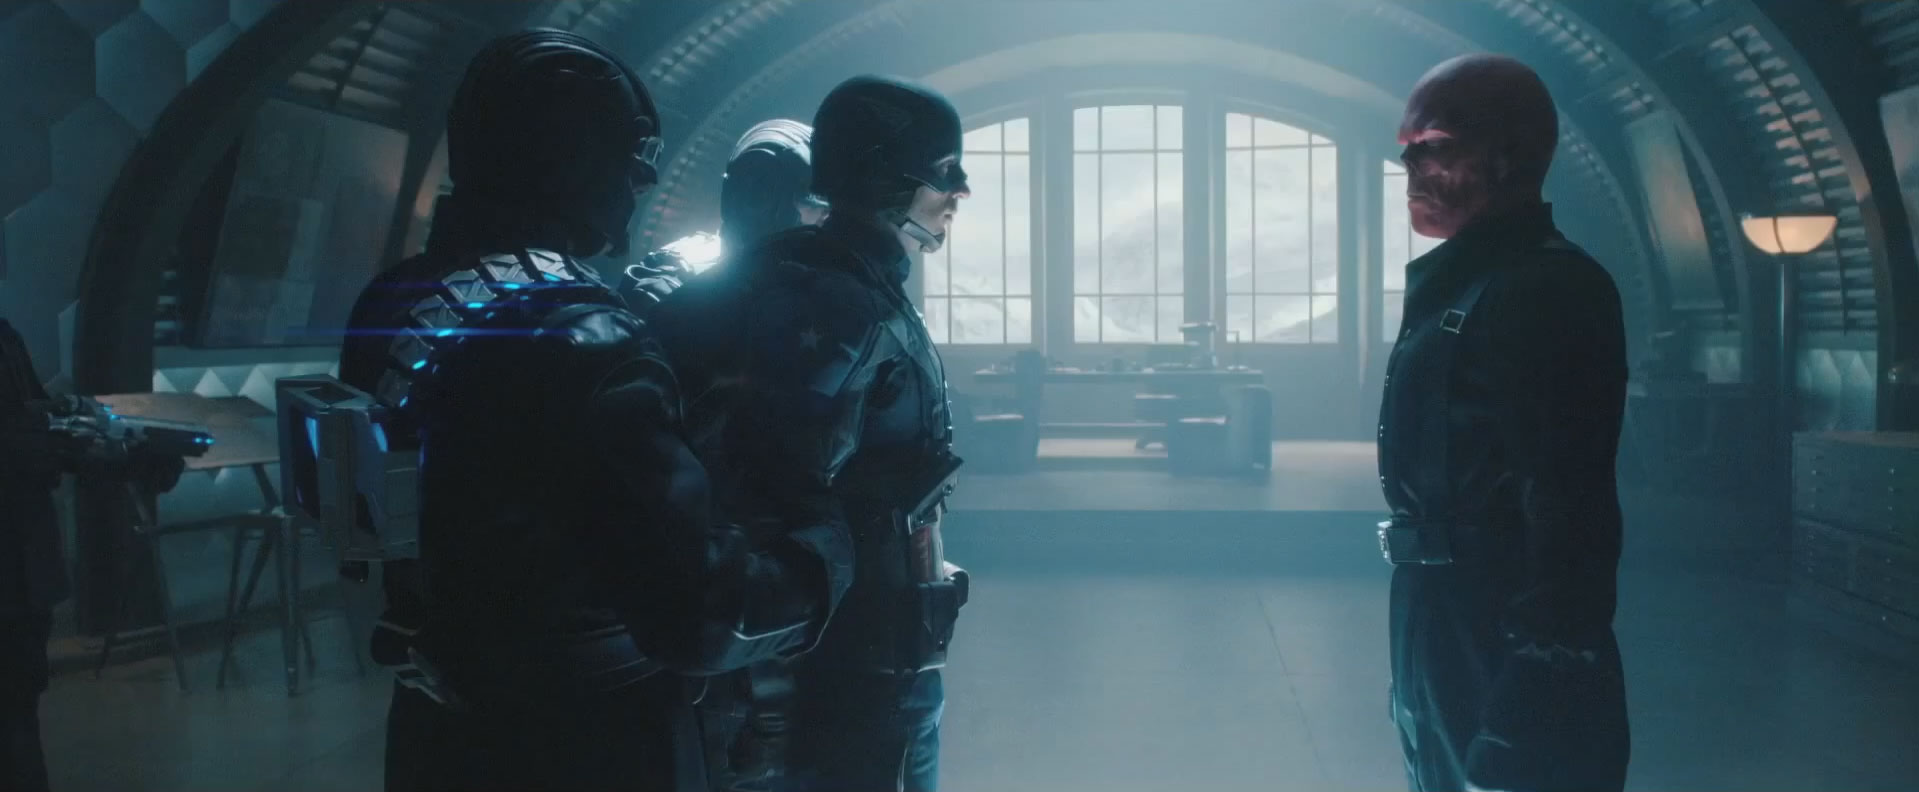 https://vignette.wikia.nocookie.net/marvelcinematicuniverse/images/5/5c/Cap-and-Red-Skull-Movie.jpg/revision/latest?cb=20121007091532